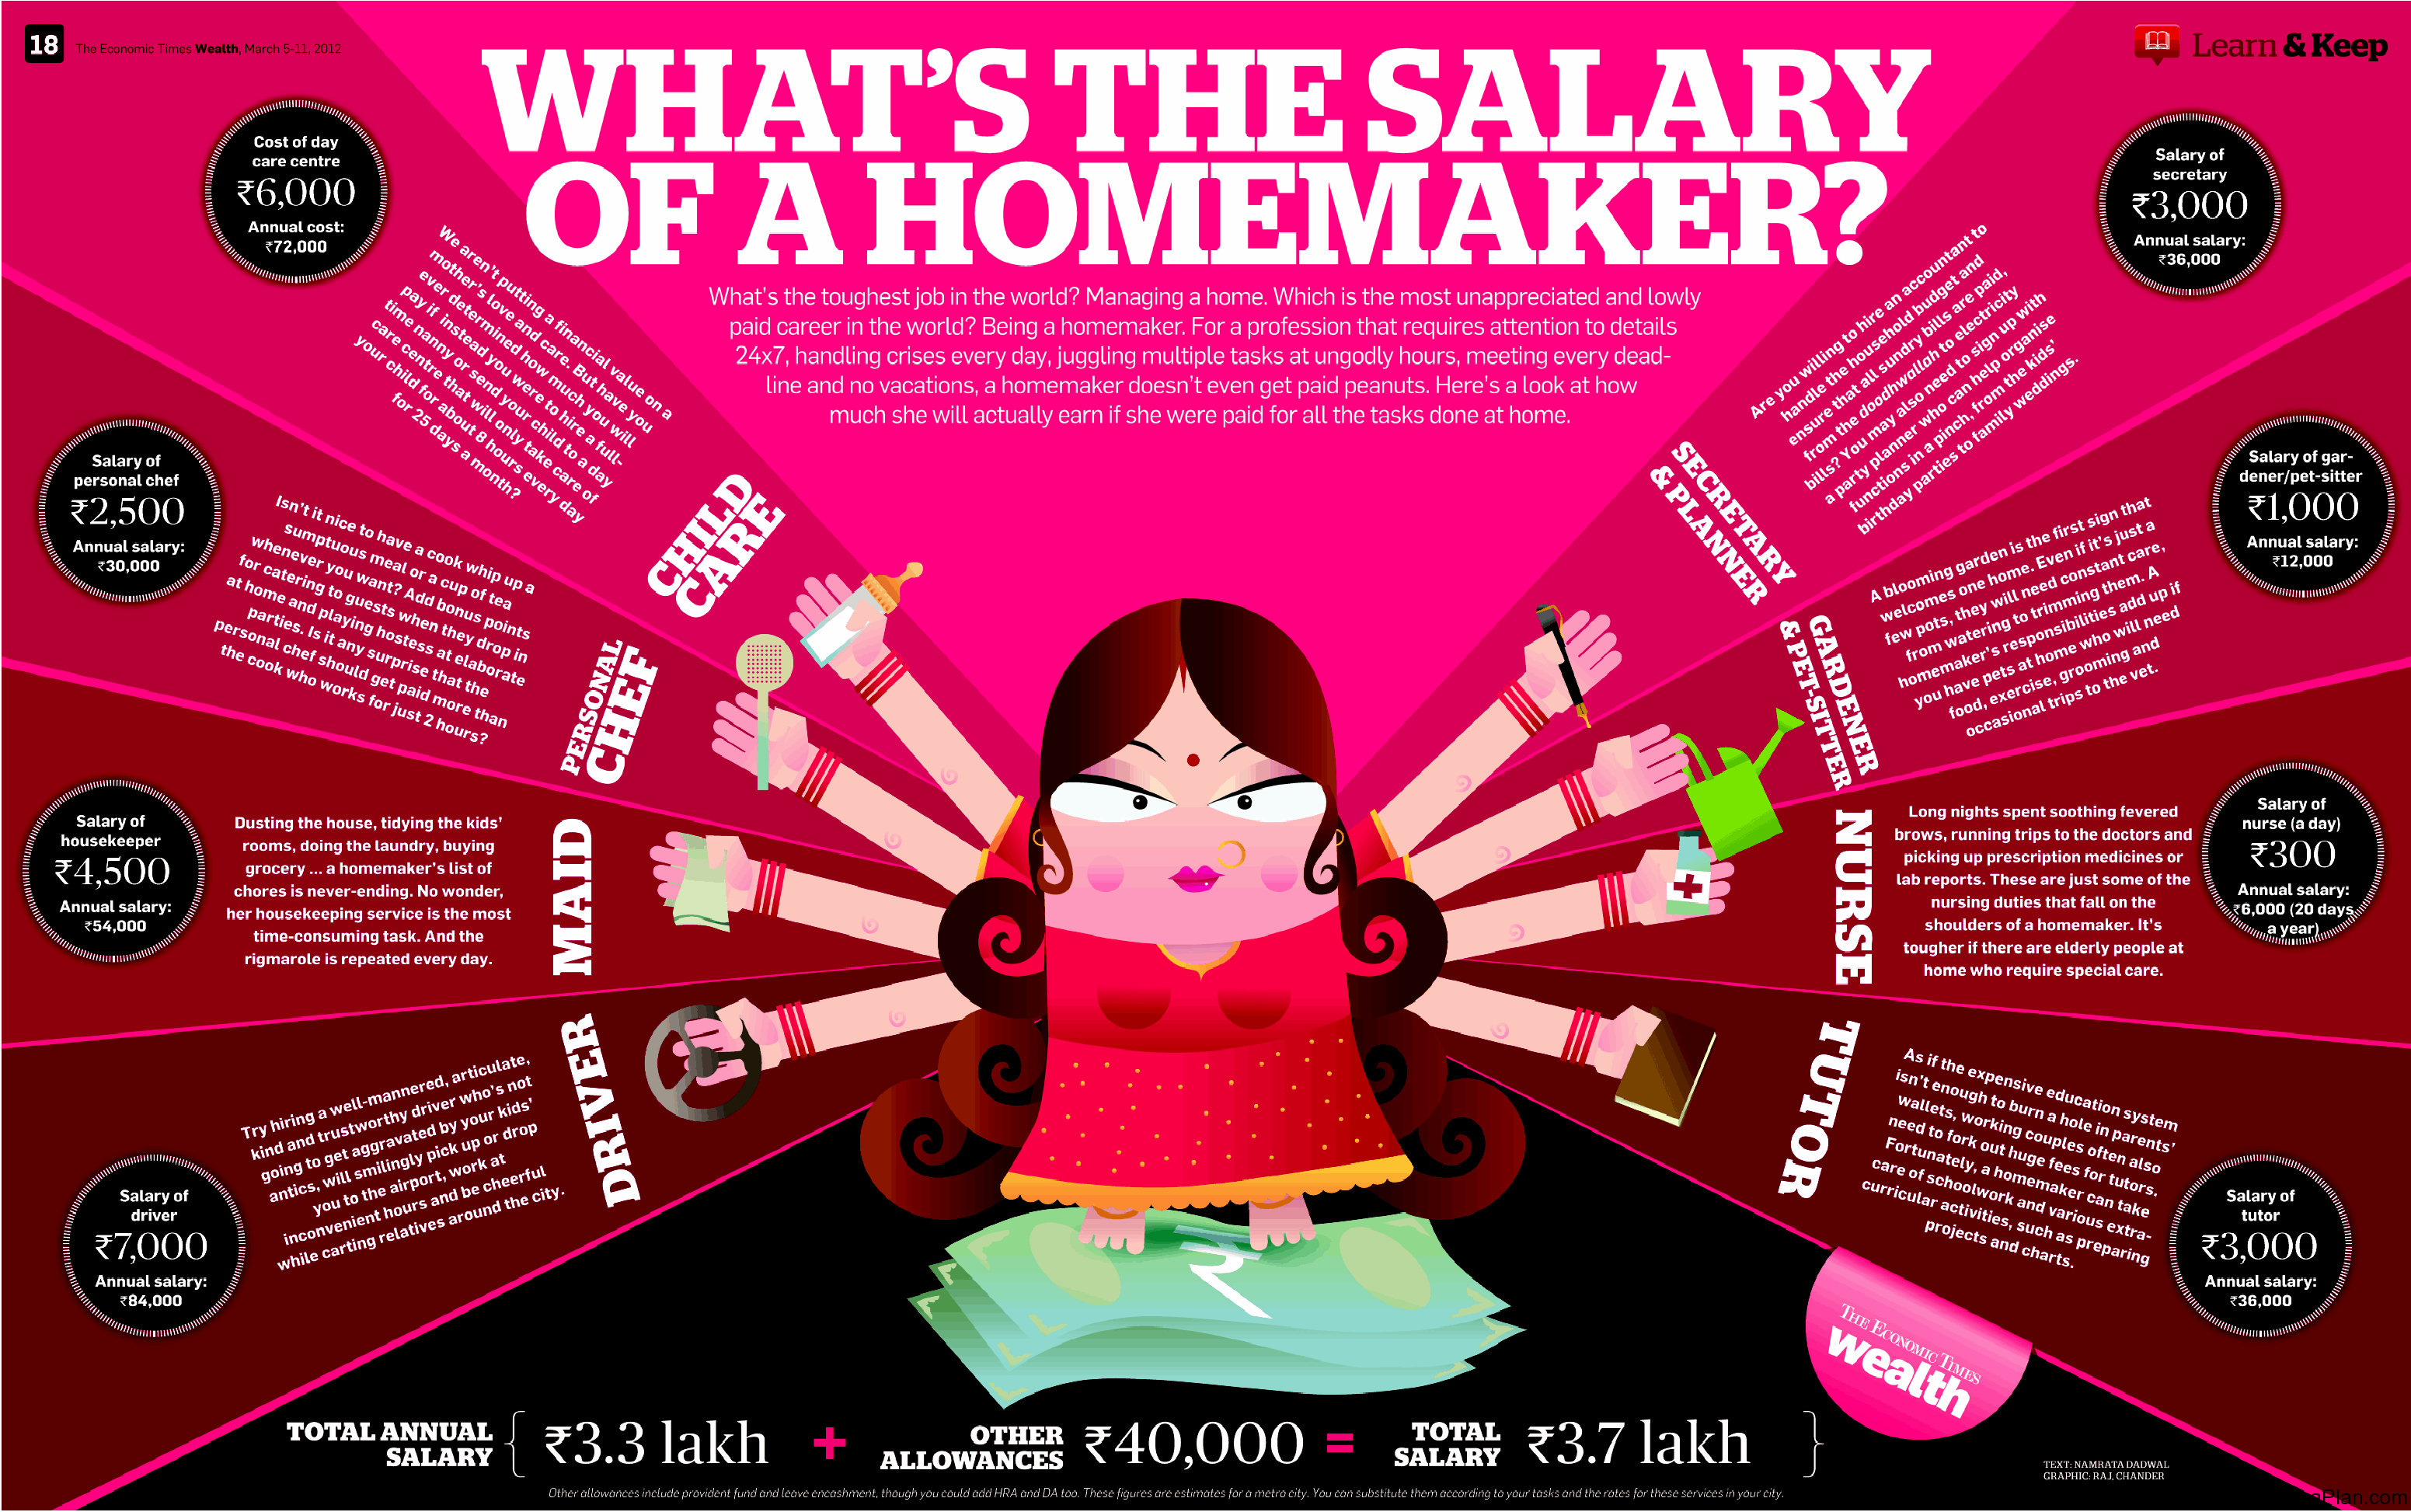 What's the salary of a homemaker